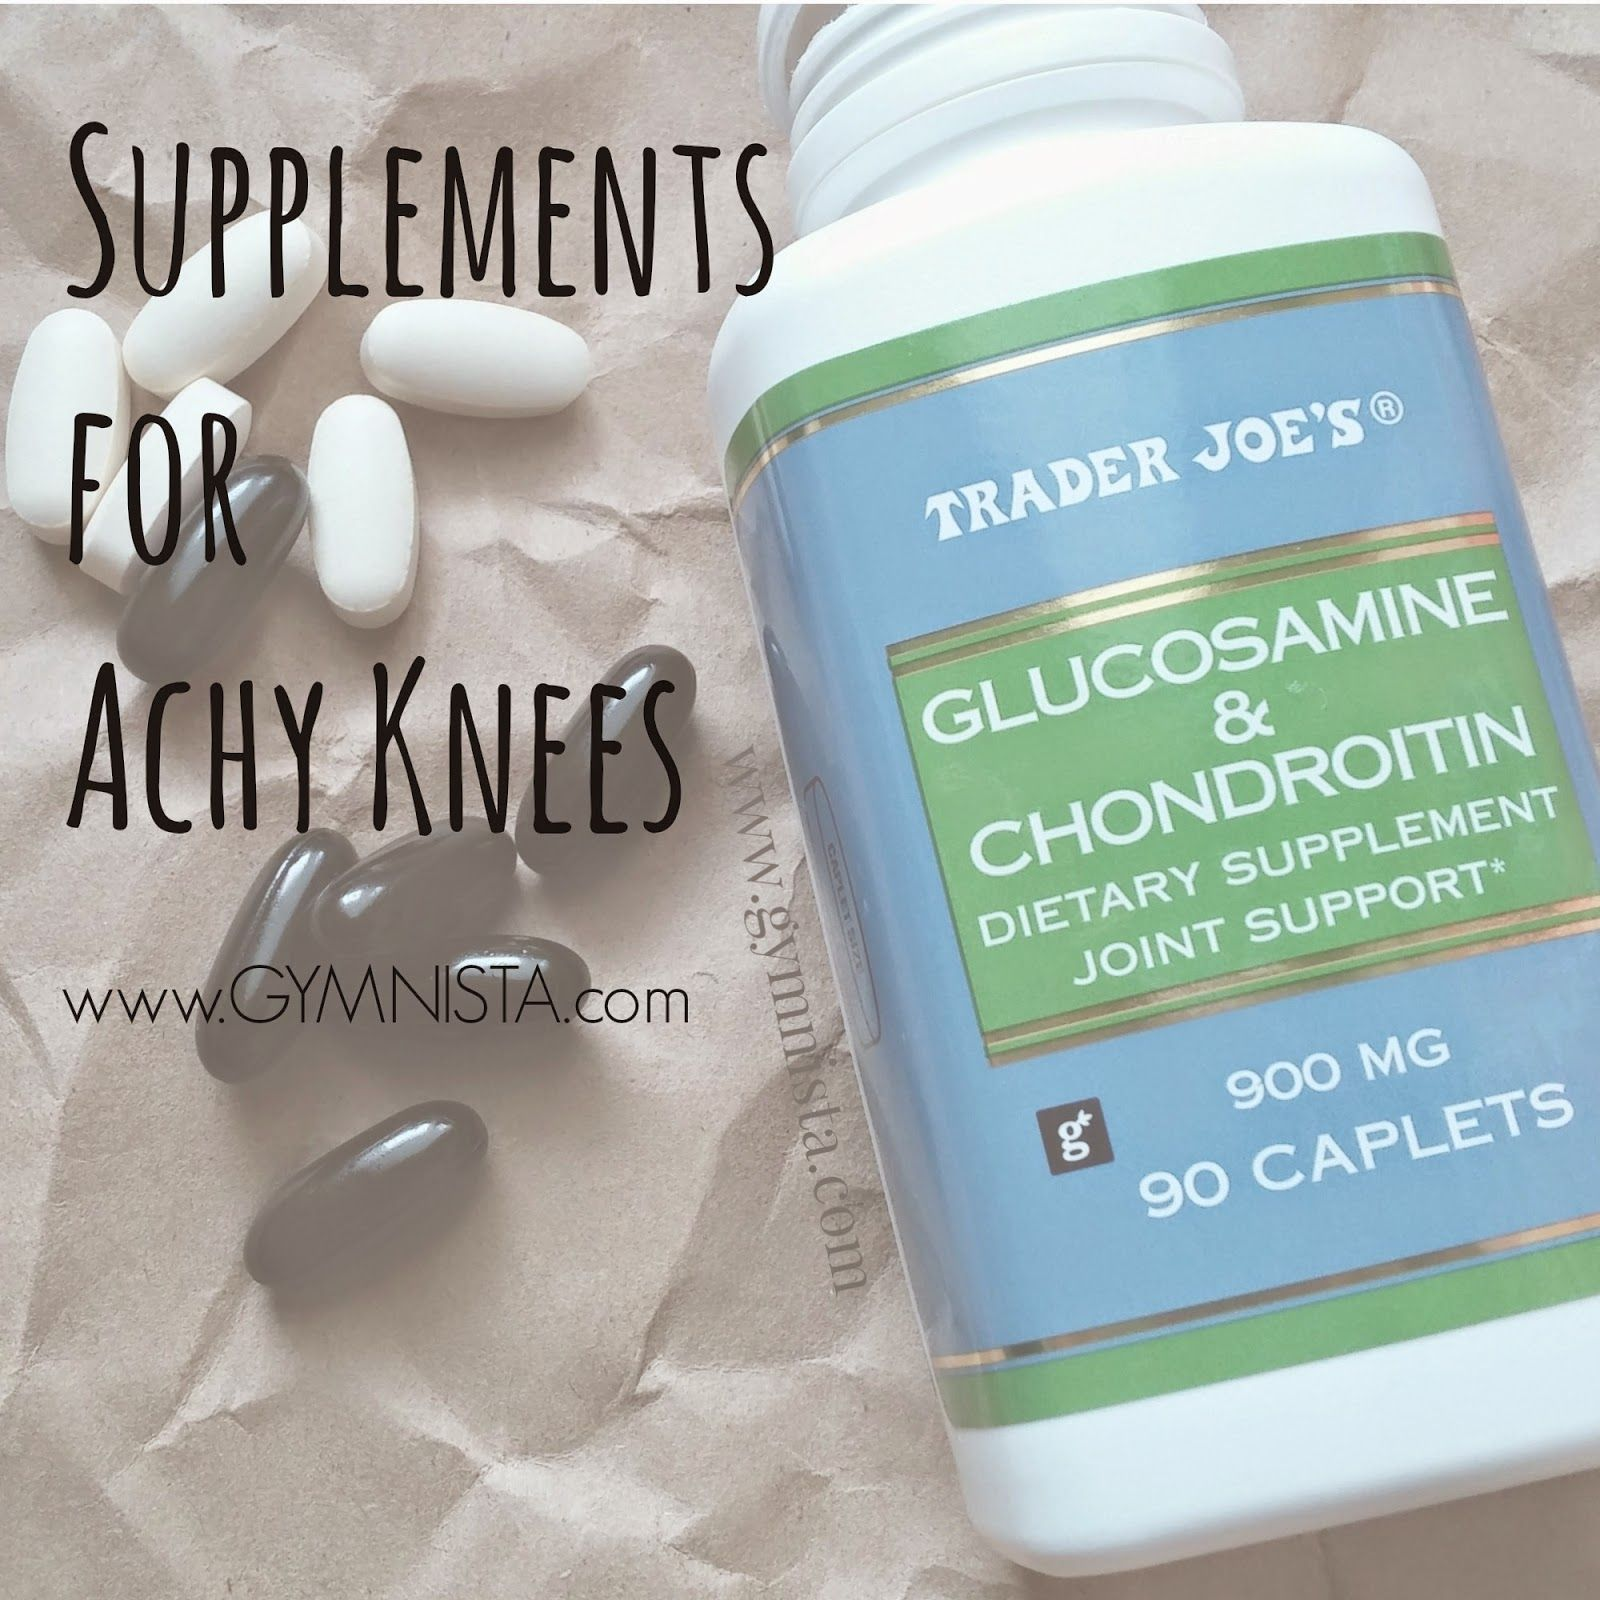 Glucosamine Chondroitin And Fish Oil For Achy Knees Chondroitin Glucosamine Chondroitin Achy